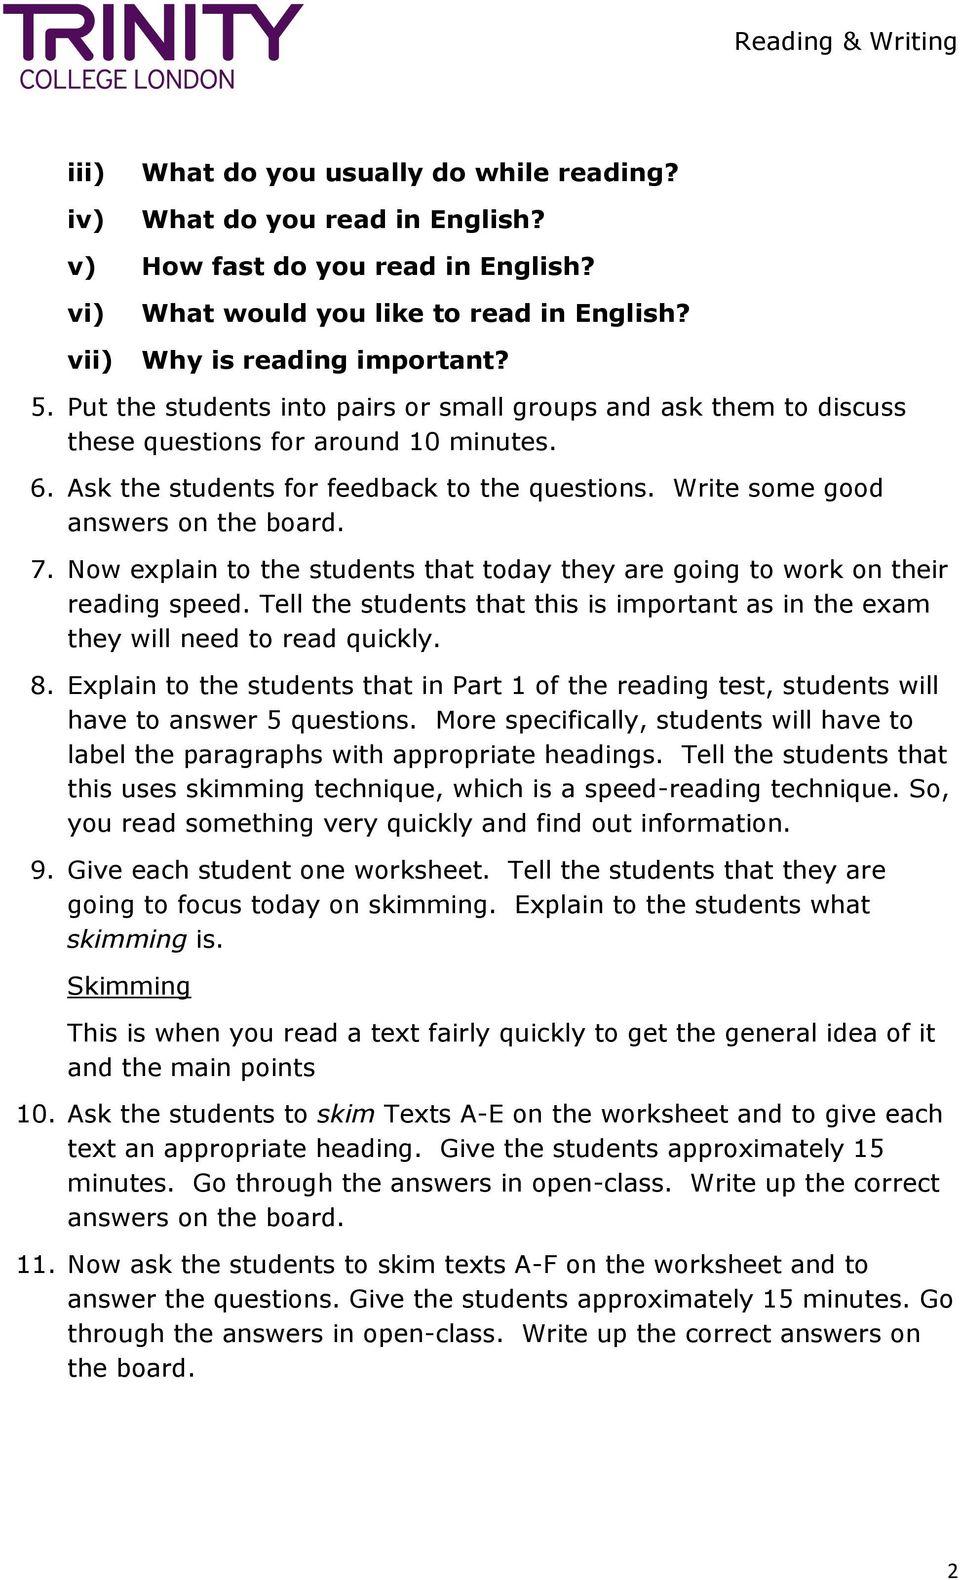 Now explain to the students that today they are going to work on their reading speed. Tell the students that this is important as in the exam they will need to read quickly. 8.